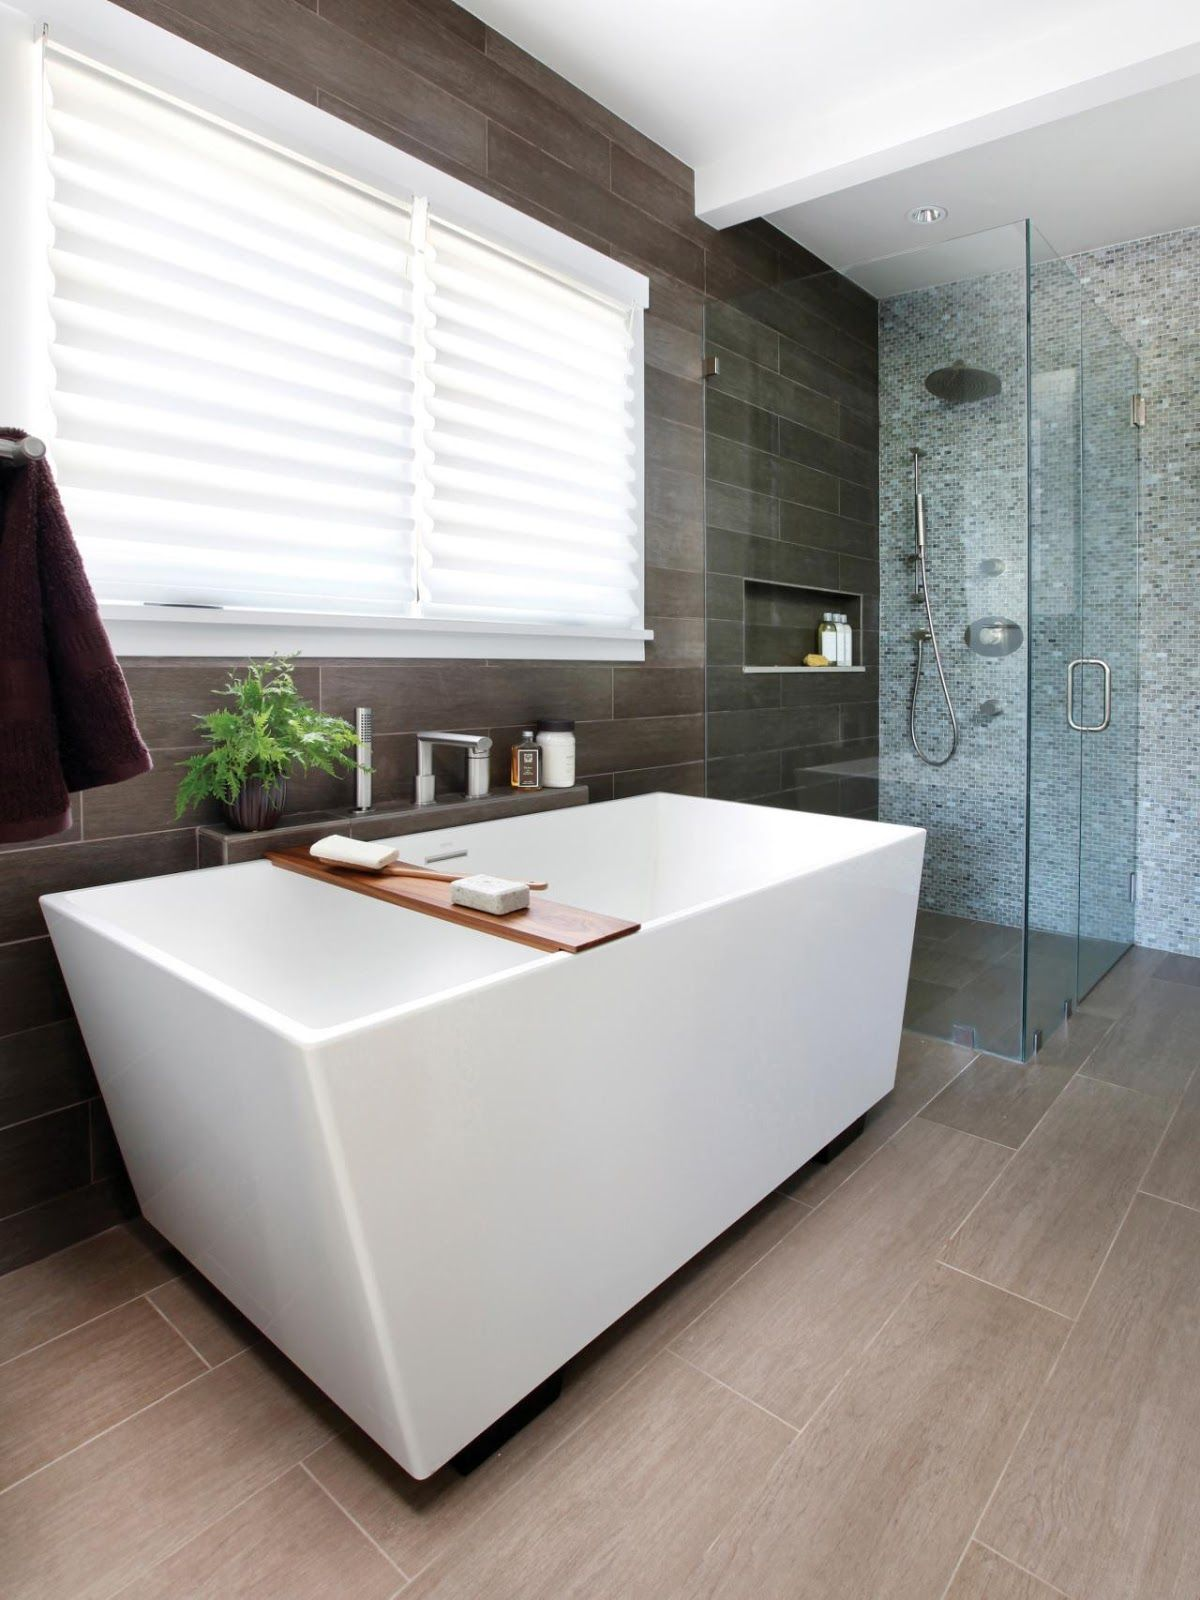 this modern style bathroom with glass shower and geometric bath  - cool greybrown tones and geometric lines paired with dark bamboo accentsand handcrafted glass tile are the foundation for a chic contemporary bath